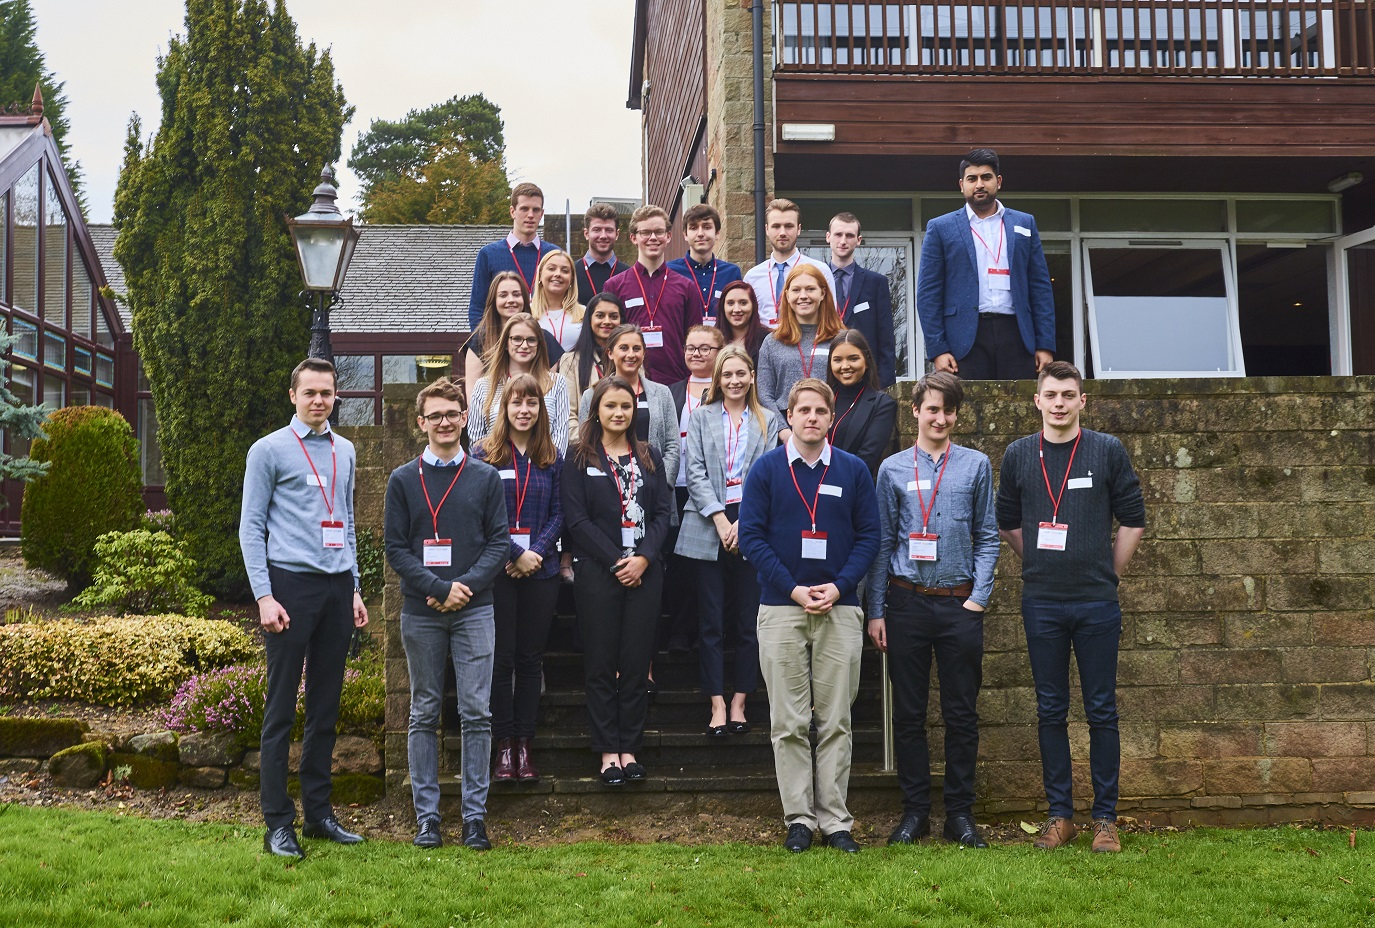 Derbyshire company Lubrizol has recruited a record number of placement students, who are working in a number of departments across the company. Penguin PR: public relations, media and communications